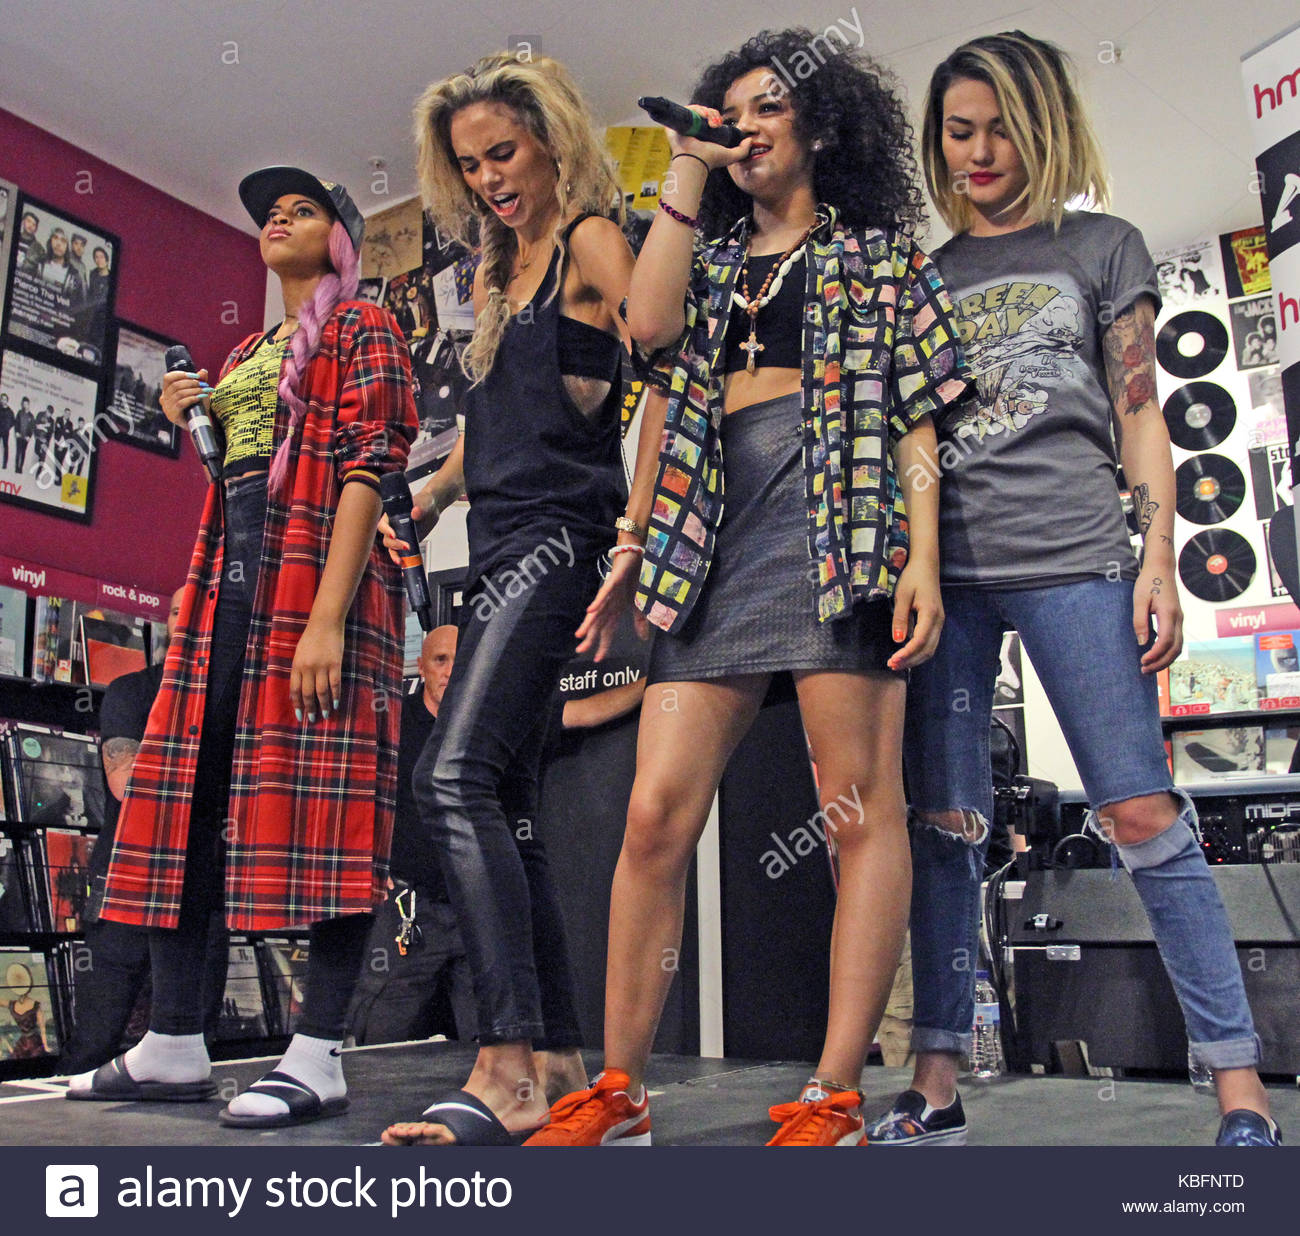 asami zdrenka jessica plummer amira mccarthy and shereen cutkelvin neon jungle neon jungle perform an acoustic set of three songs and then sign their